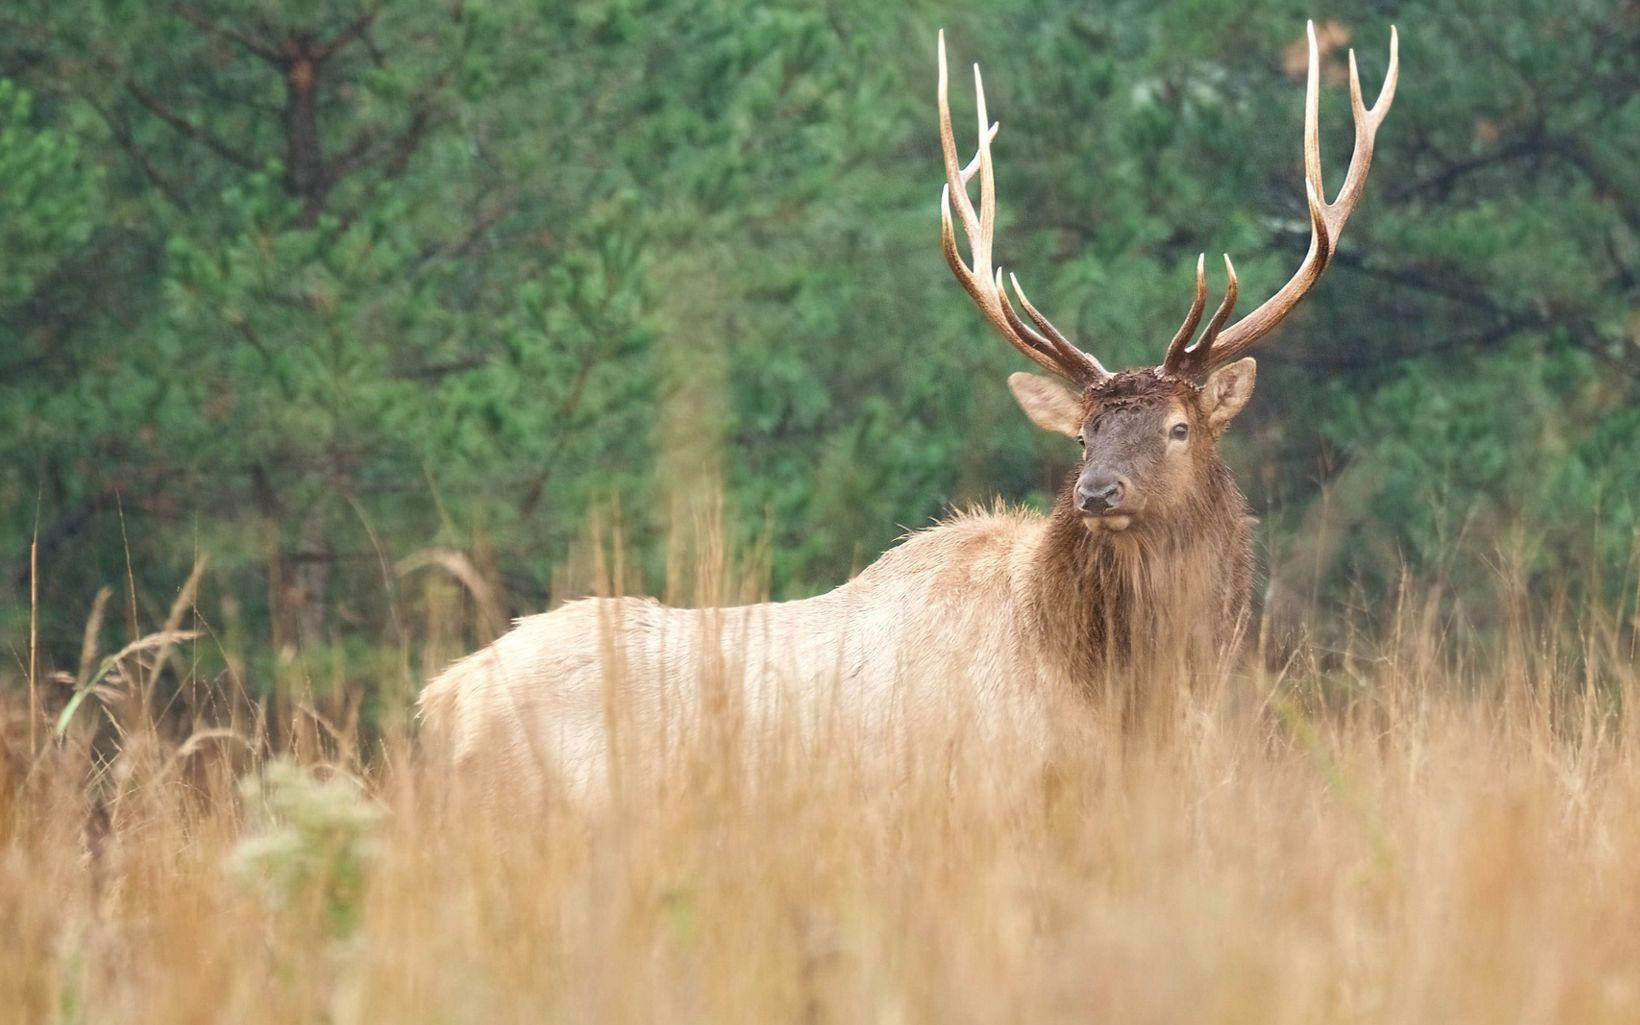 Bull elk in the rain at J.T. Nickel Preserve in Oklahoma.